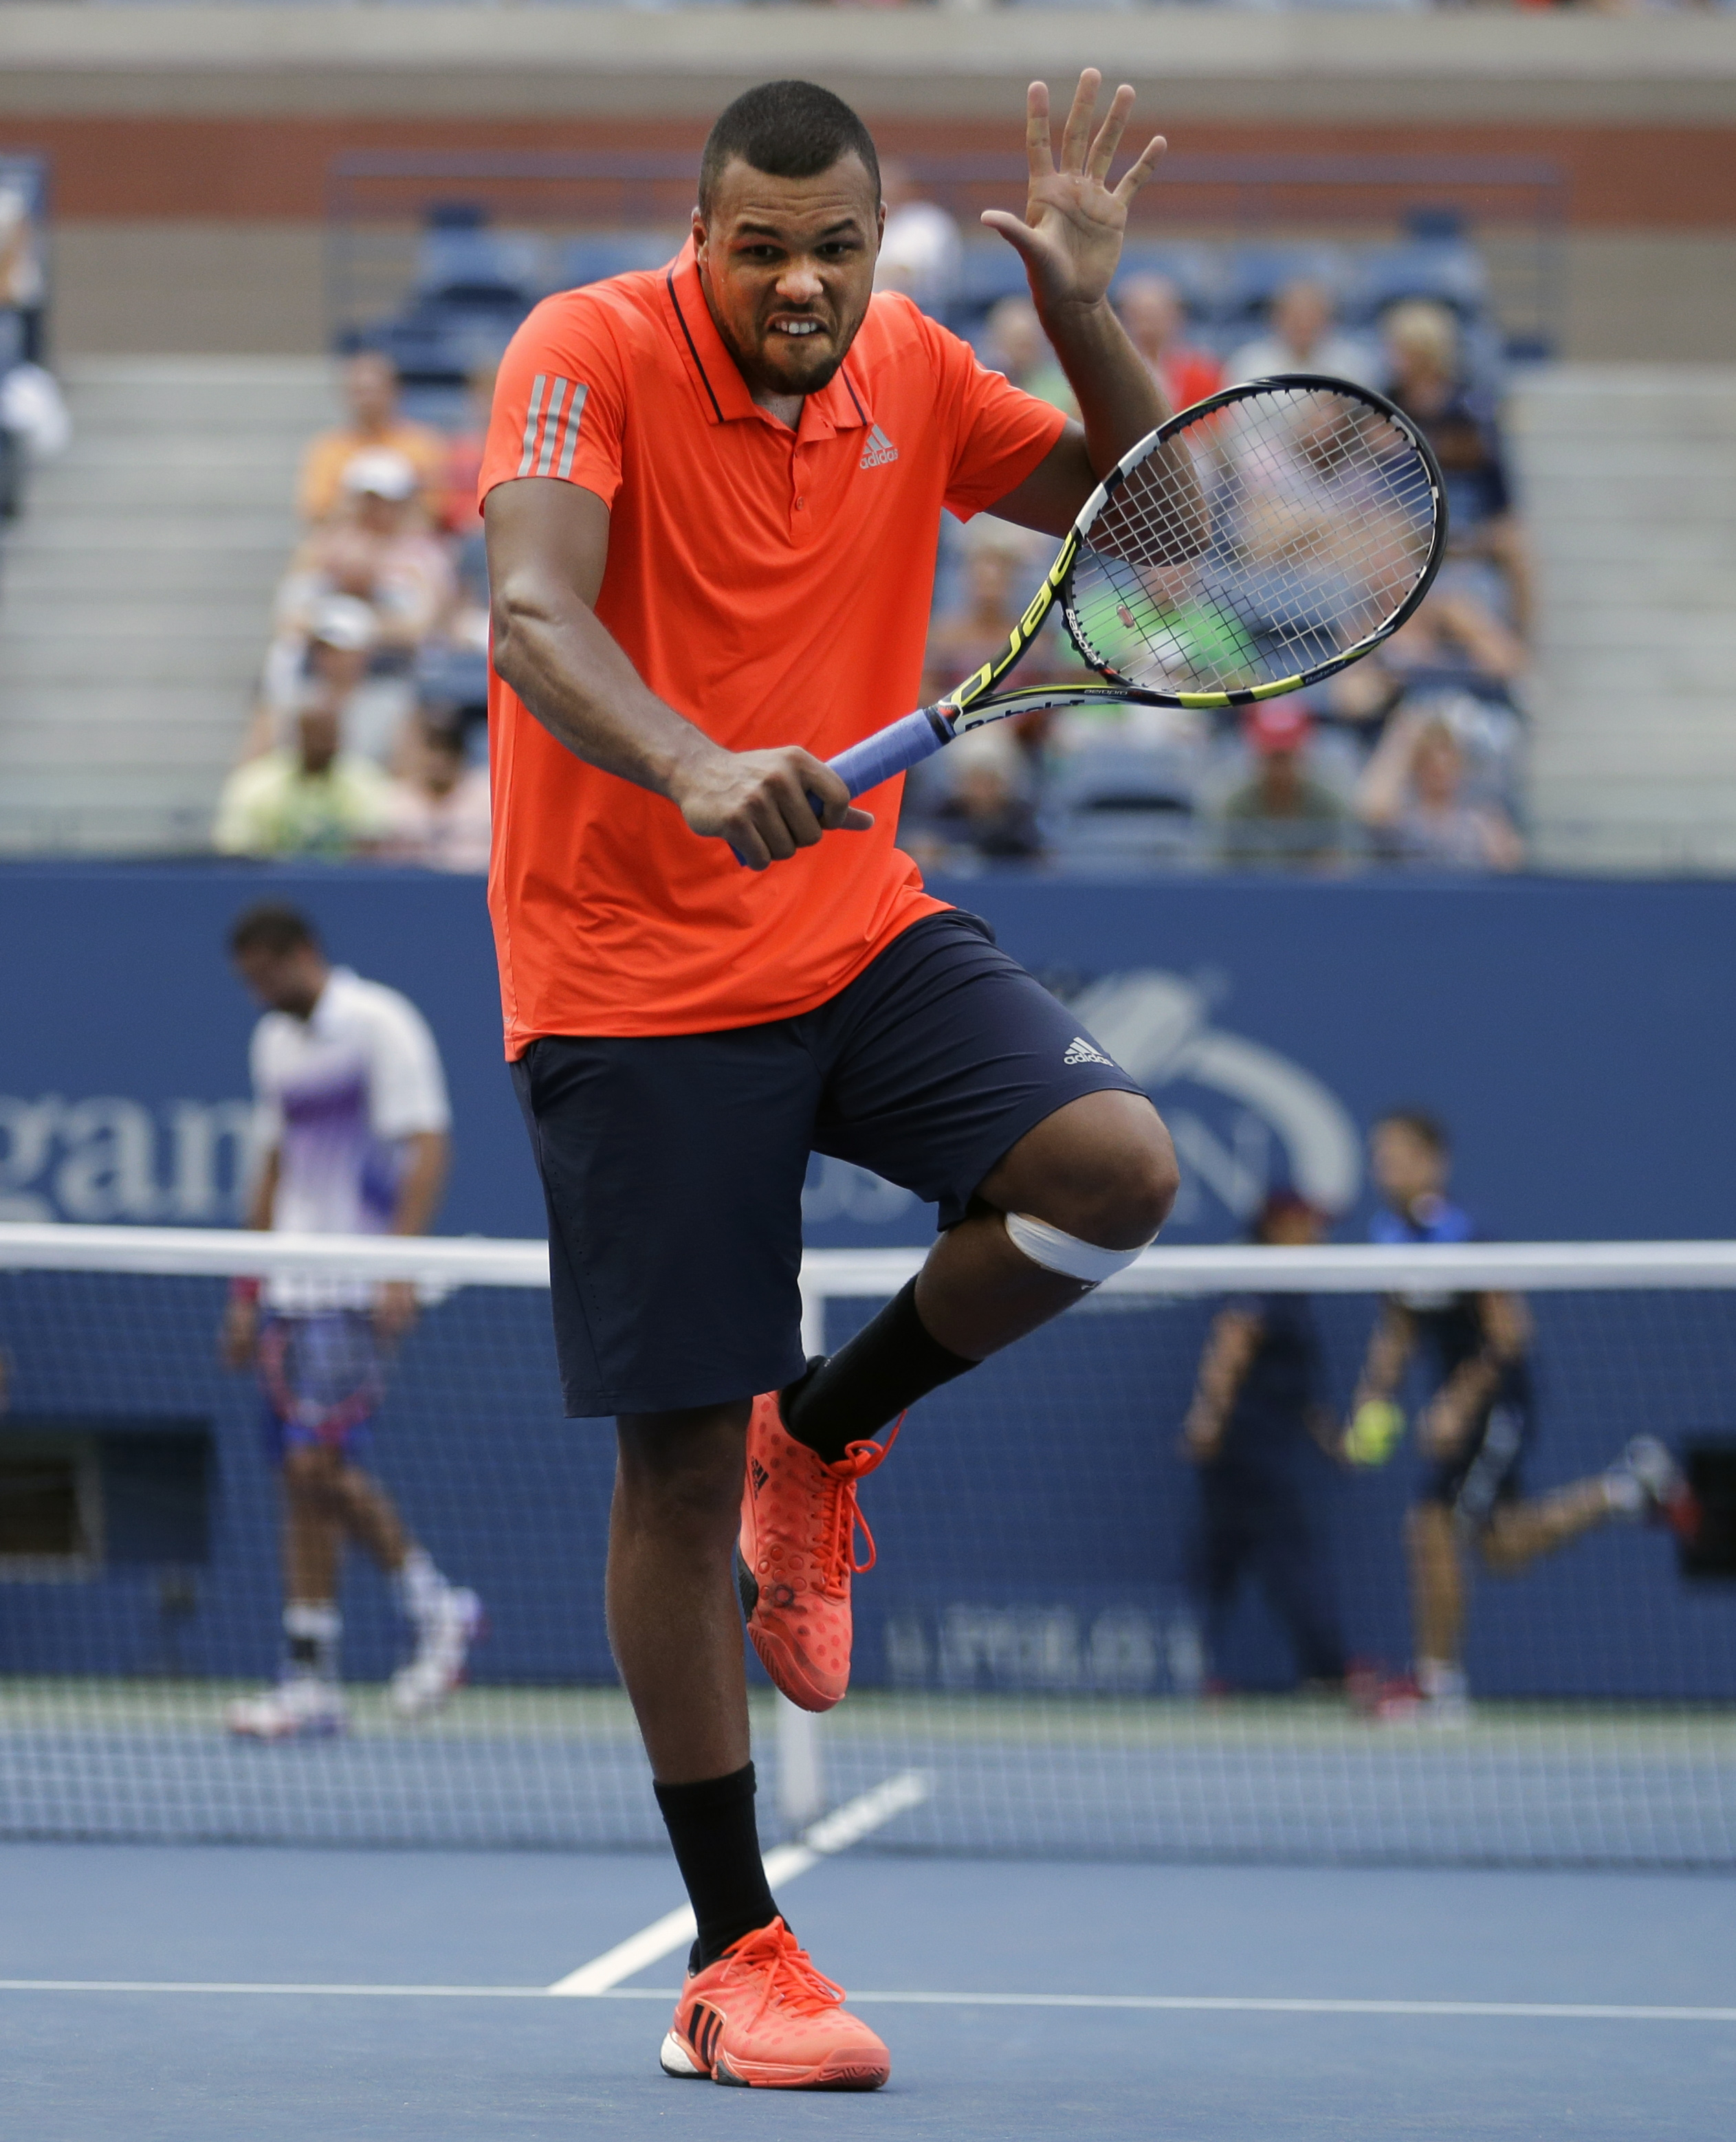 Jo-Wilfried Tsonga, of France, reacts after a shot to Marin Cilic, of Croatia, during a quarterfinal match at the U.S. Open tennis tournament, Tuesday, Sept. 8, 2015, in New York. (AP Photo/David Goldman)